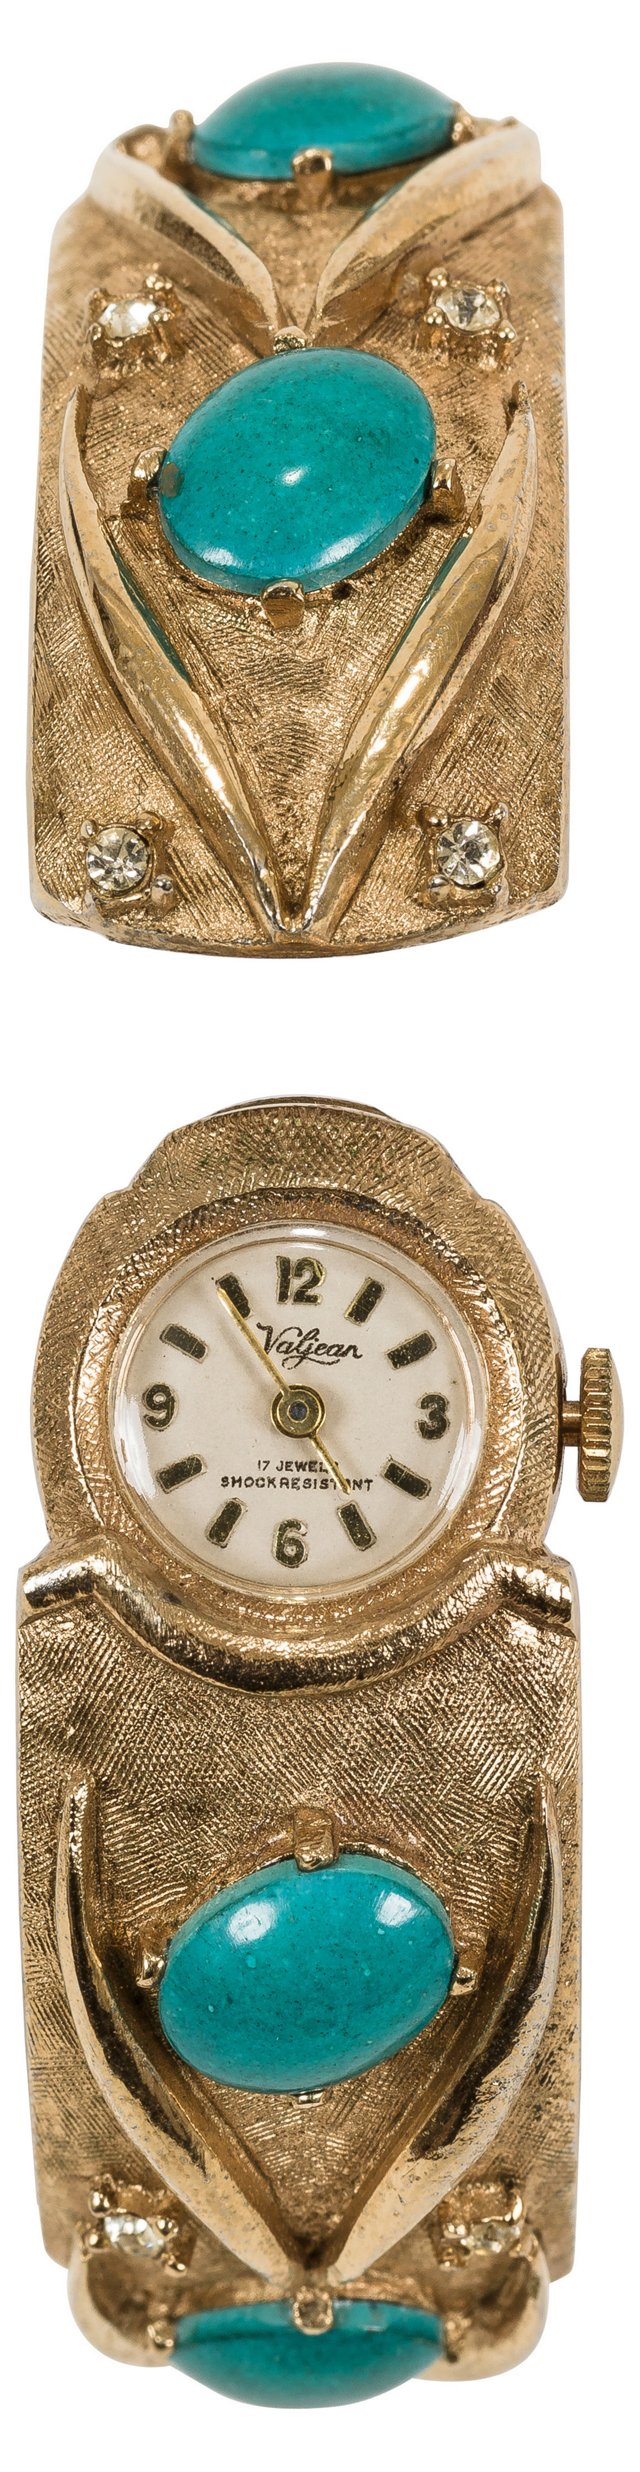 Vintage Gold & Turquoise Watch